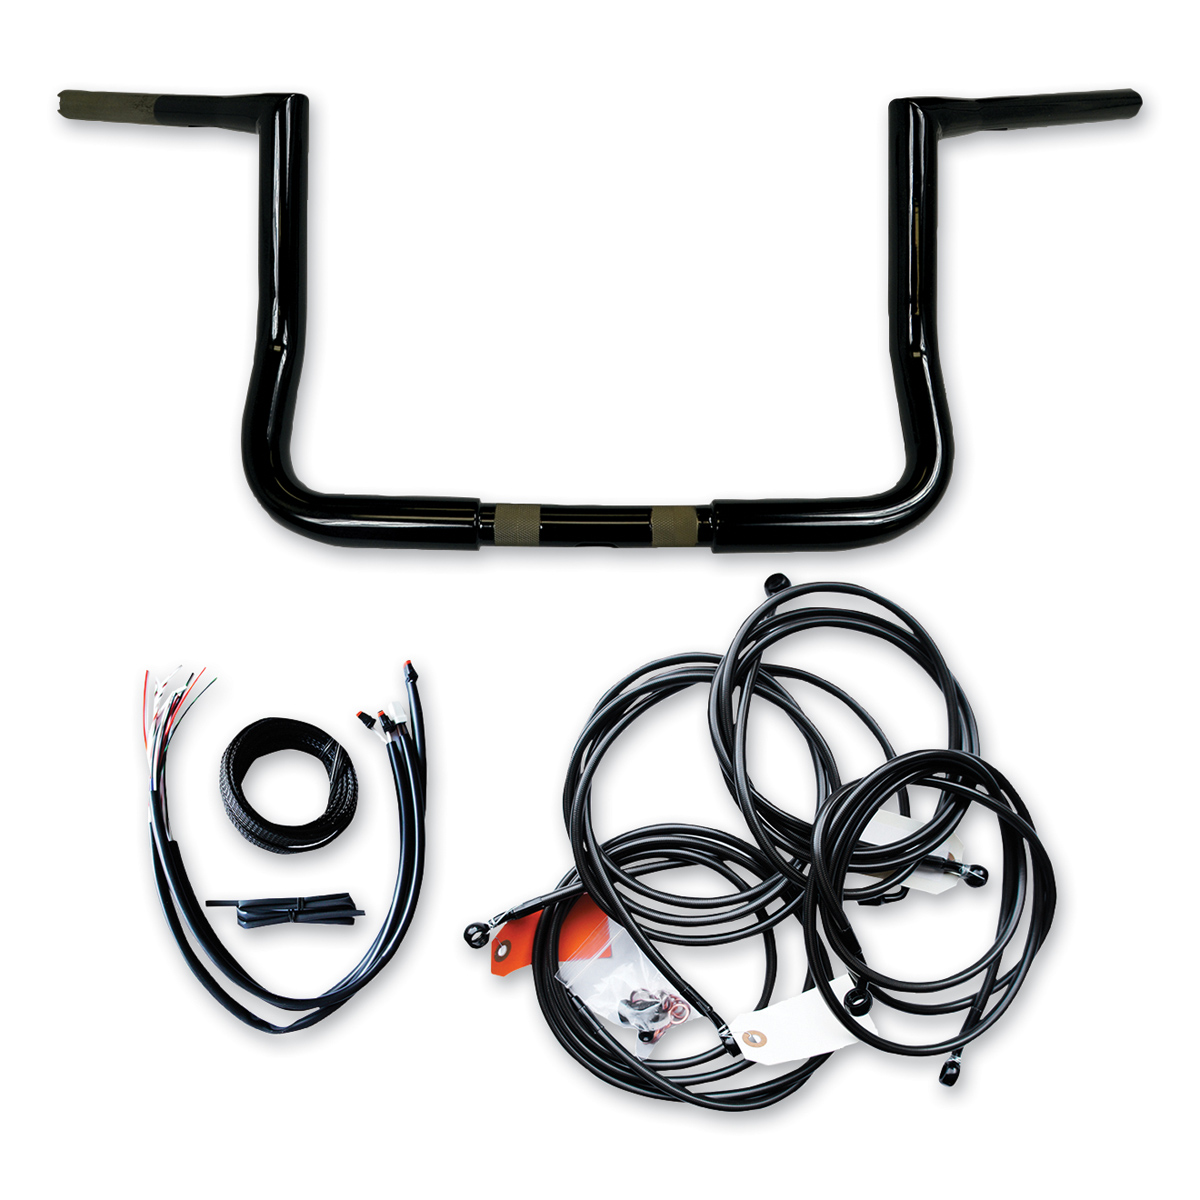 LA Choppers 1-1/4' Black 14' Bagger Ape Hanger Black Handlebar Kit